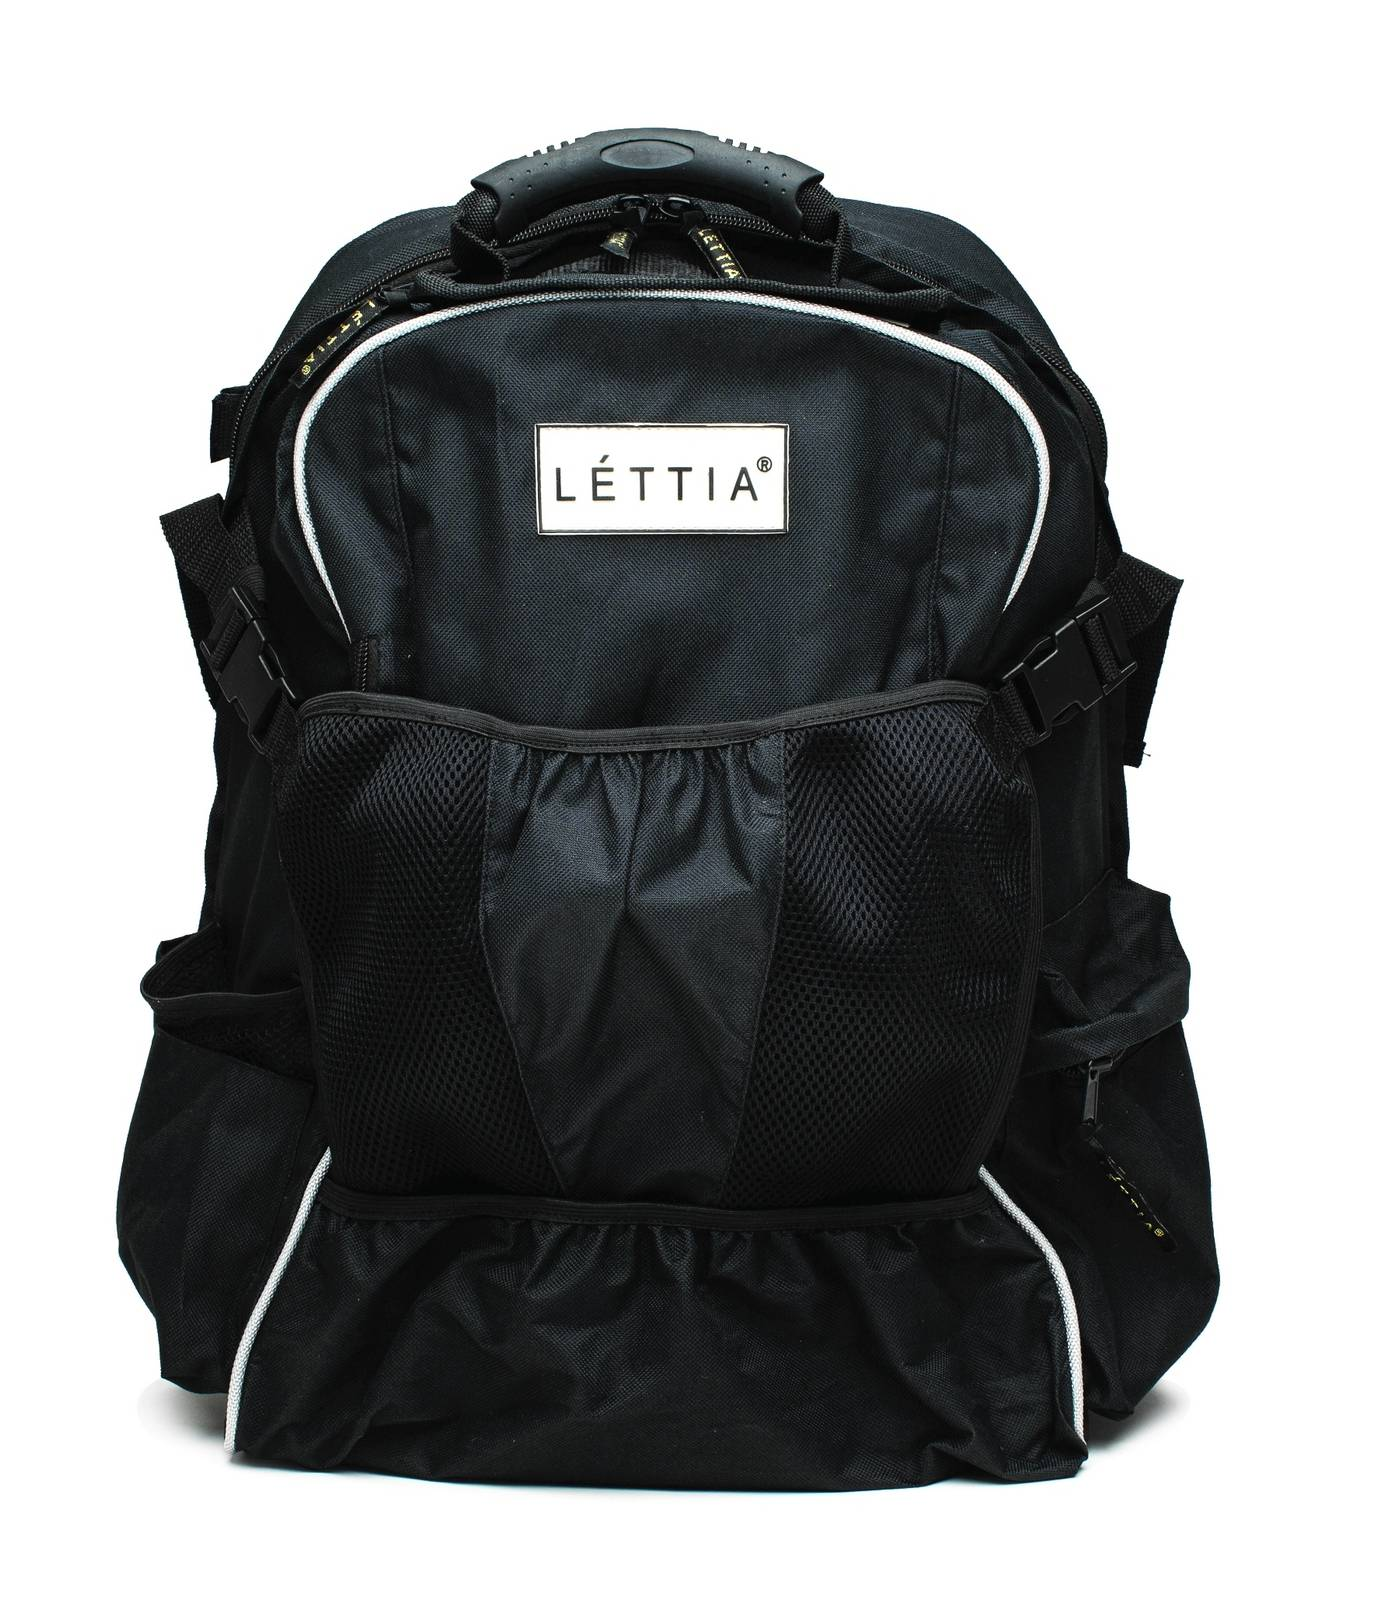 Lettia Equestrian Backpack